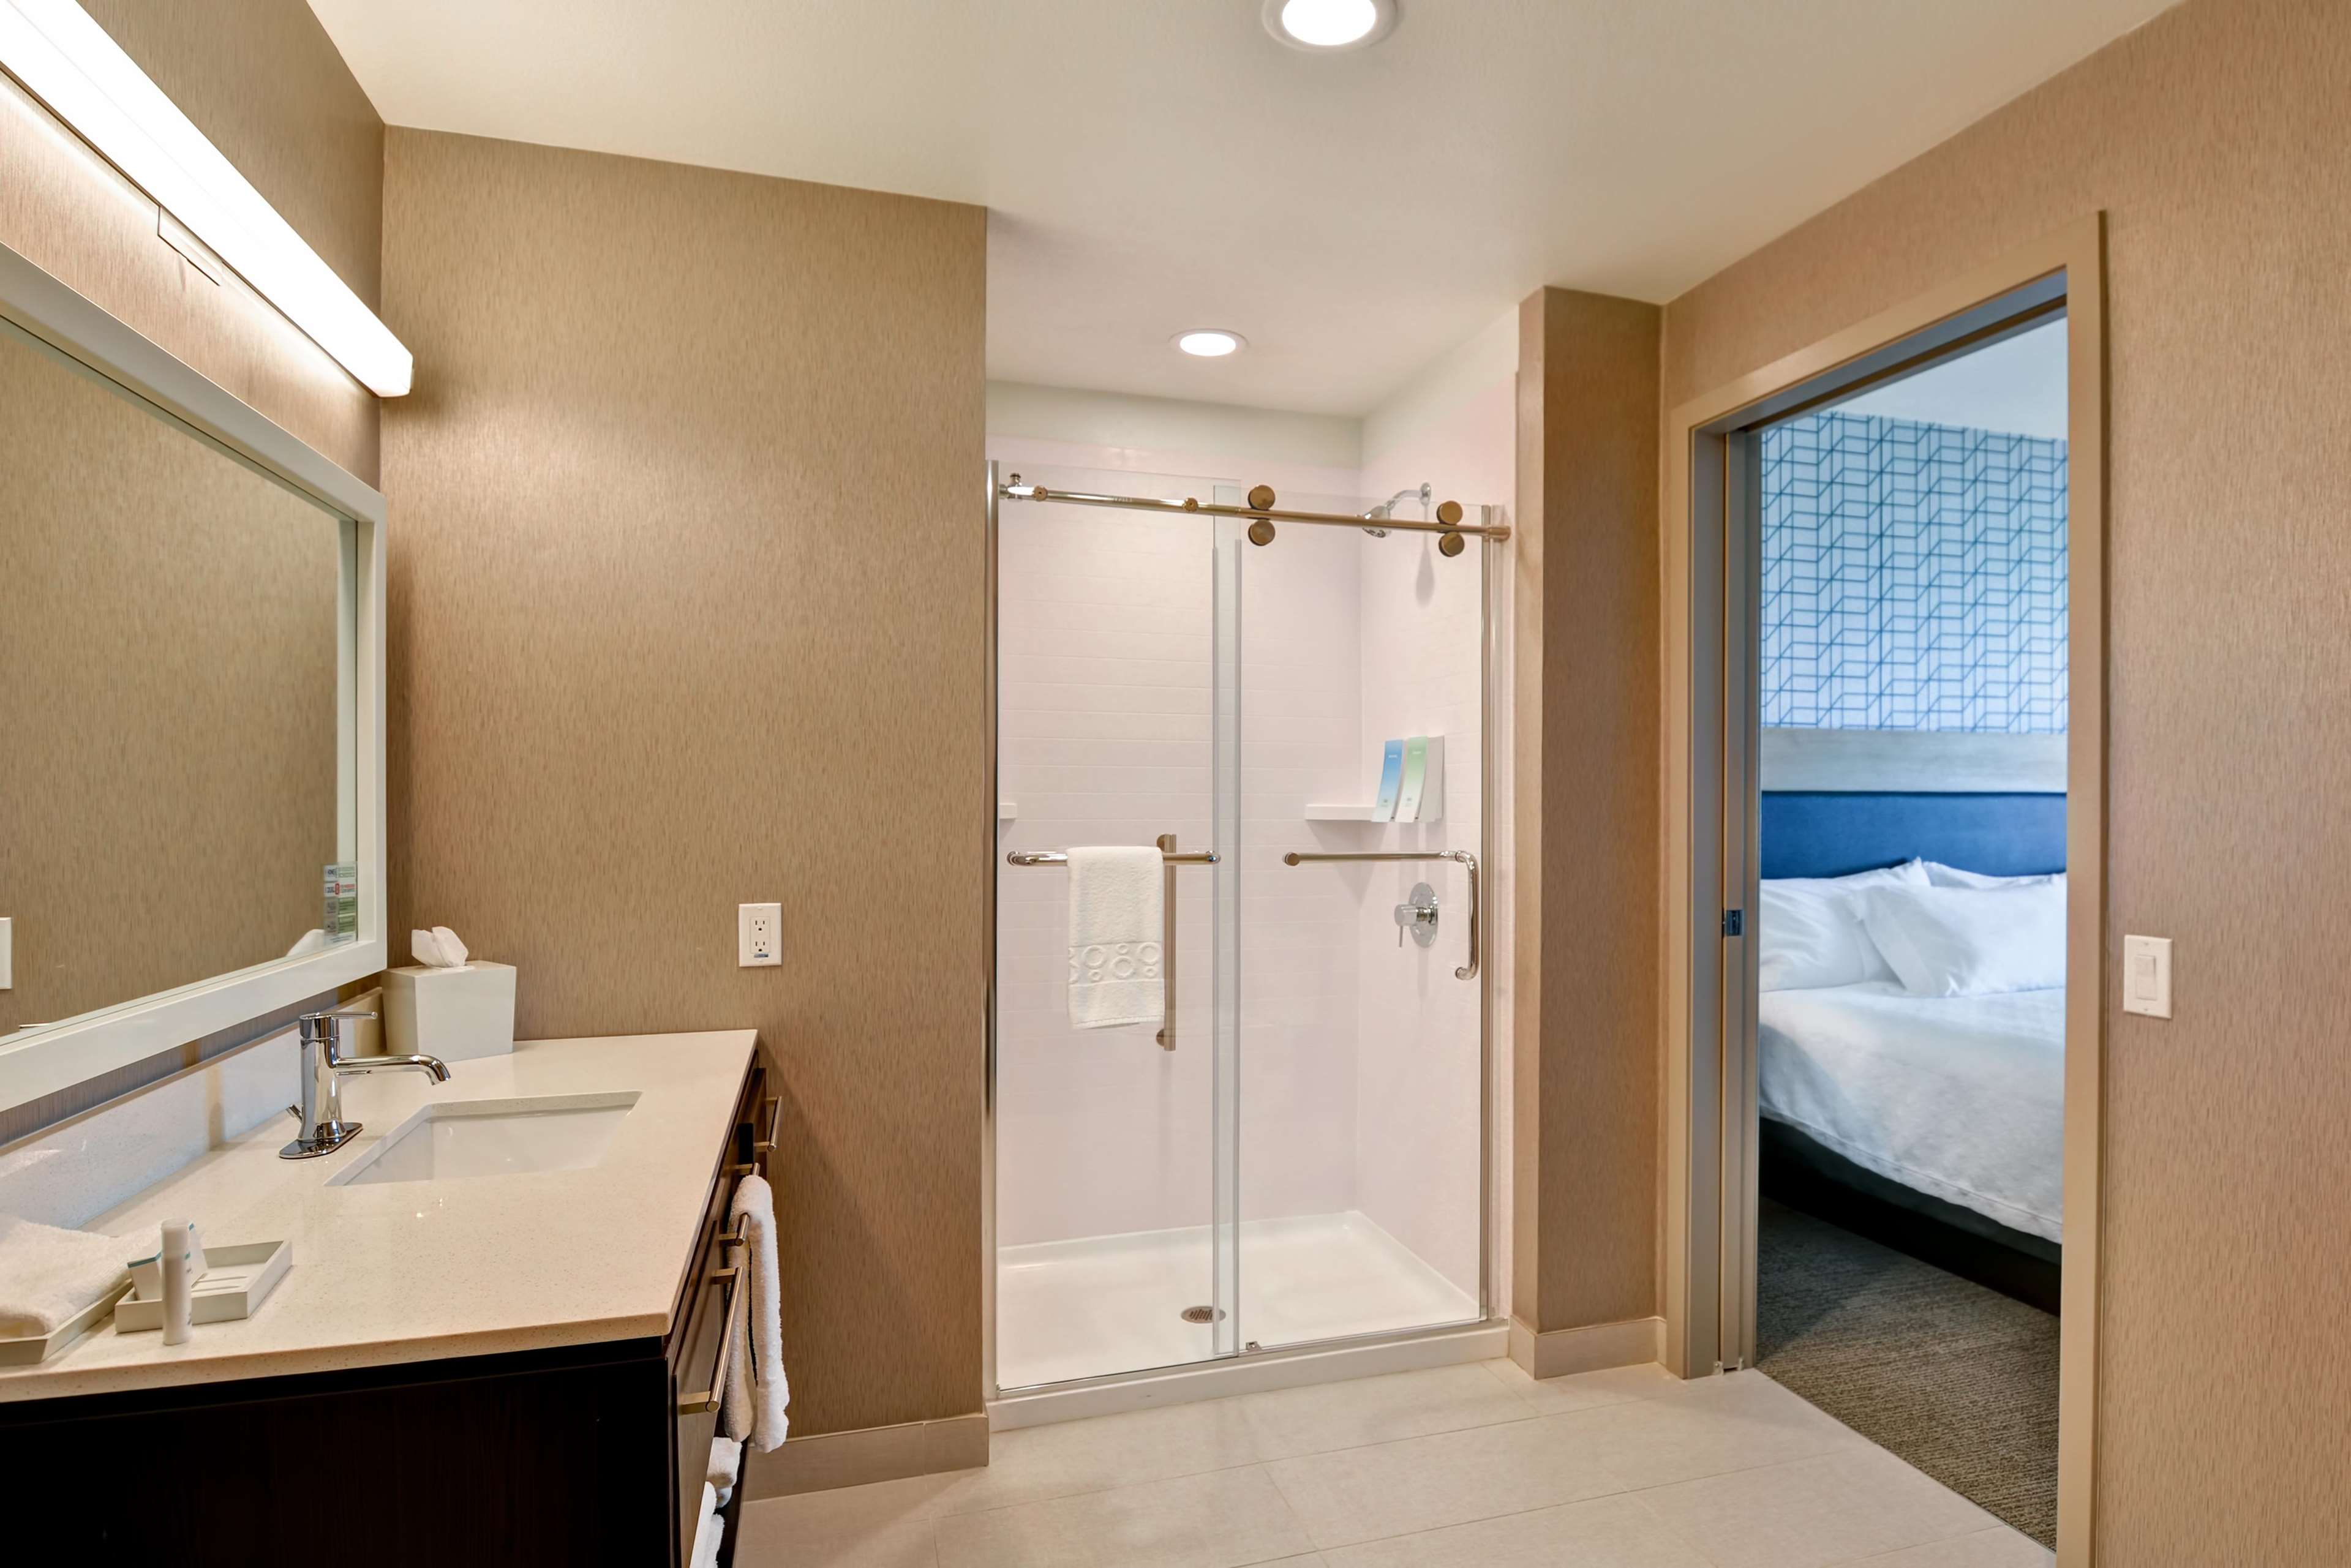 Home2 Suites by Hilton Palmdale image 14